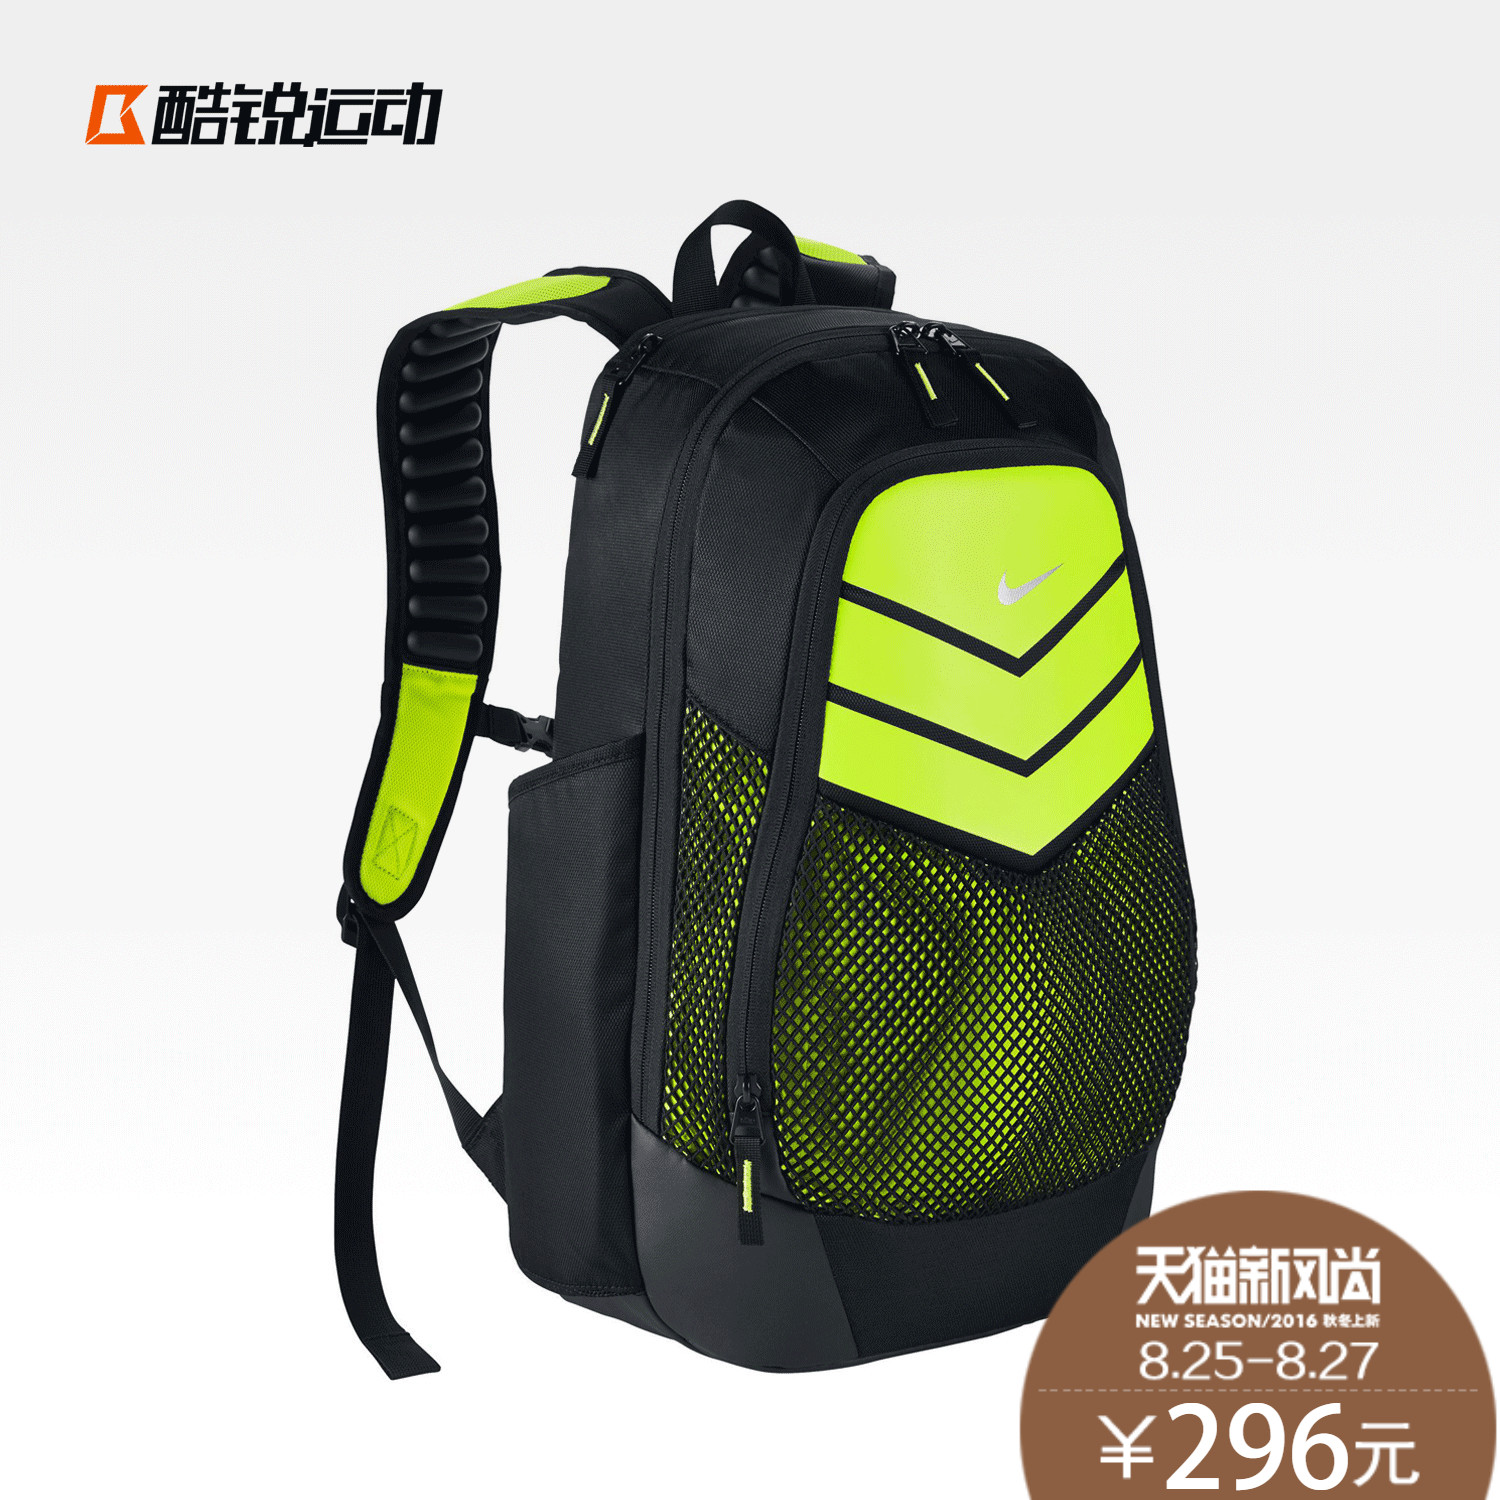 Buy Authentic nike max air vapor cushion men and women riding shoulder bag  student backpack schoolbag ba4883 in Cheap Price on Alibaba.com 6fdec2bcaa